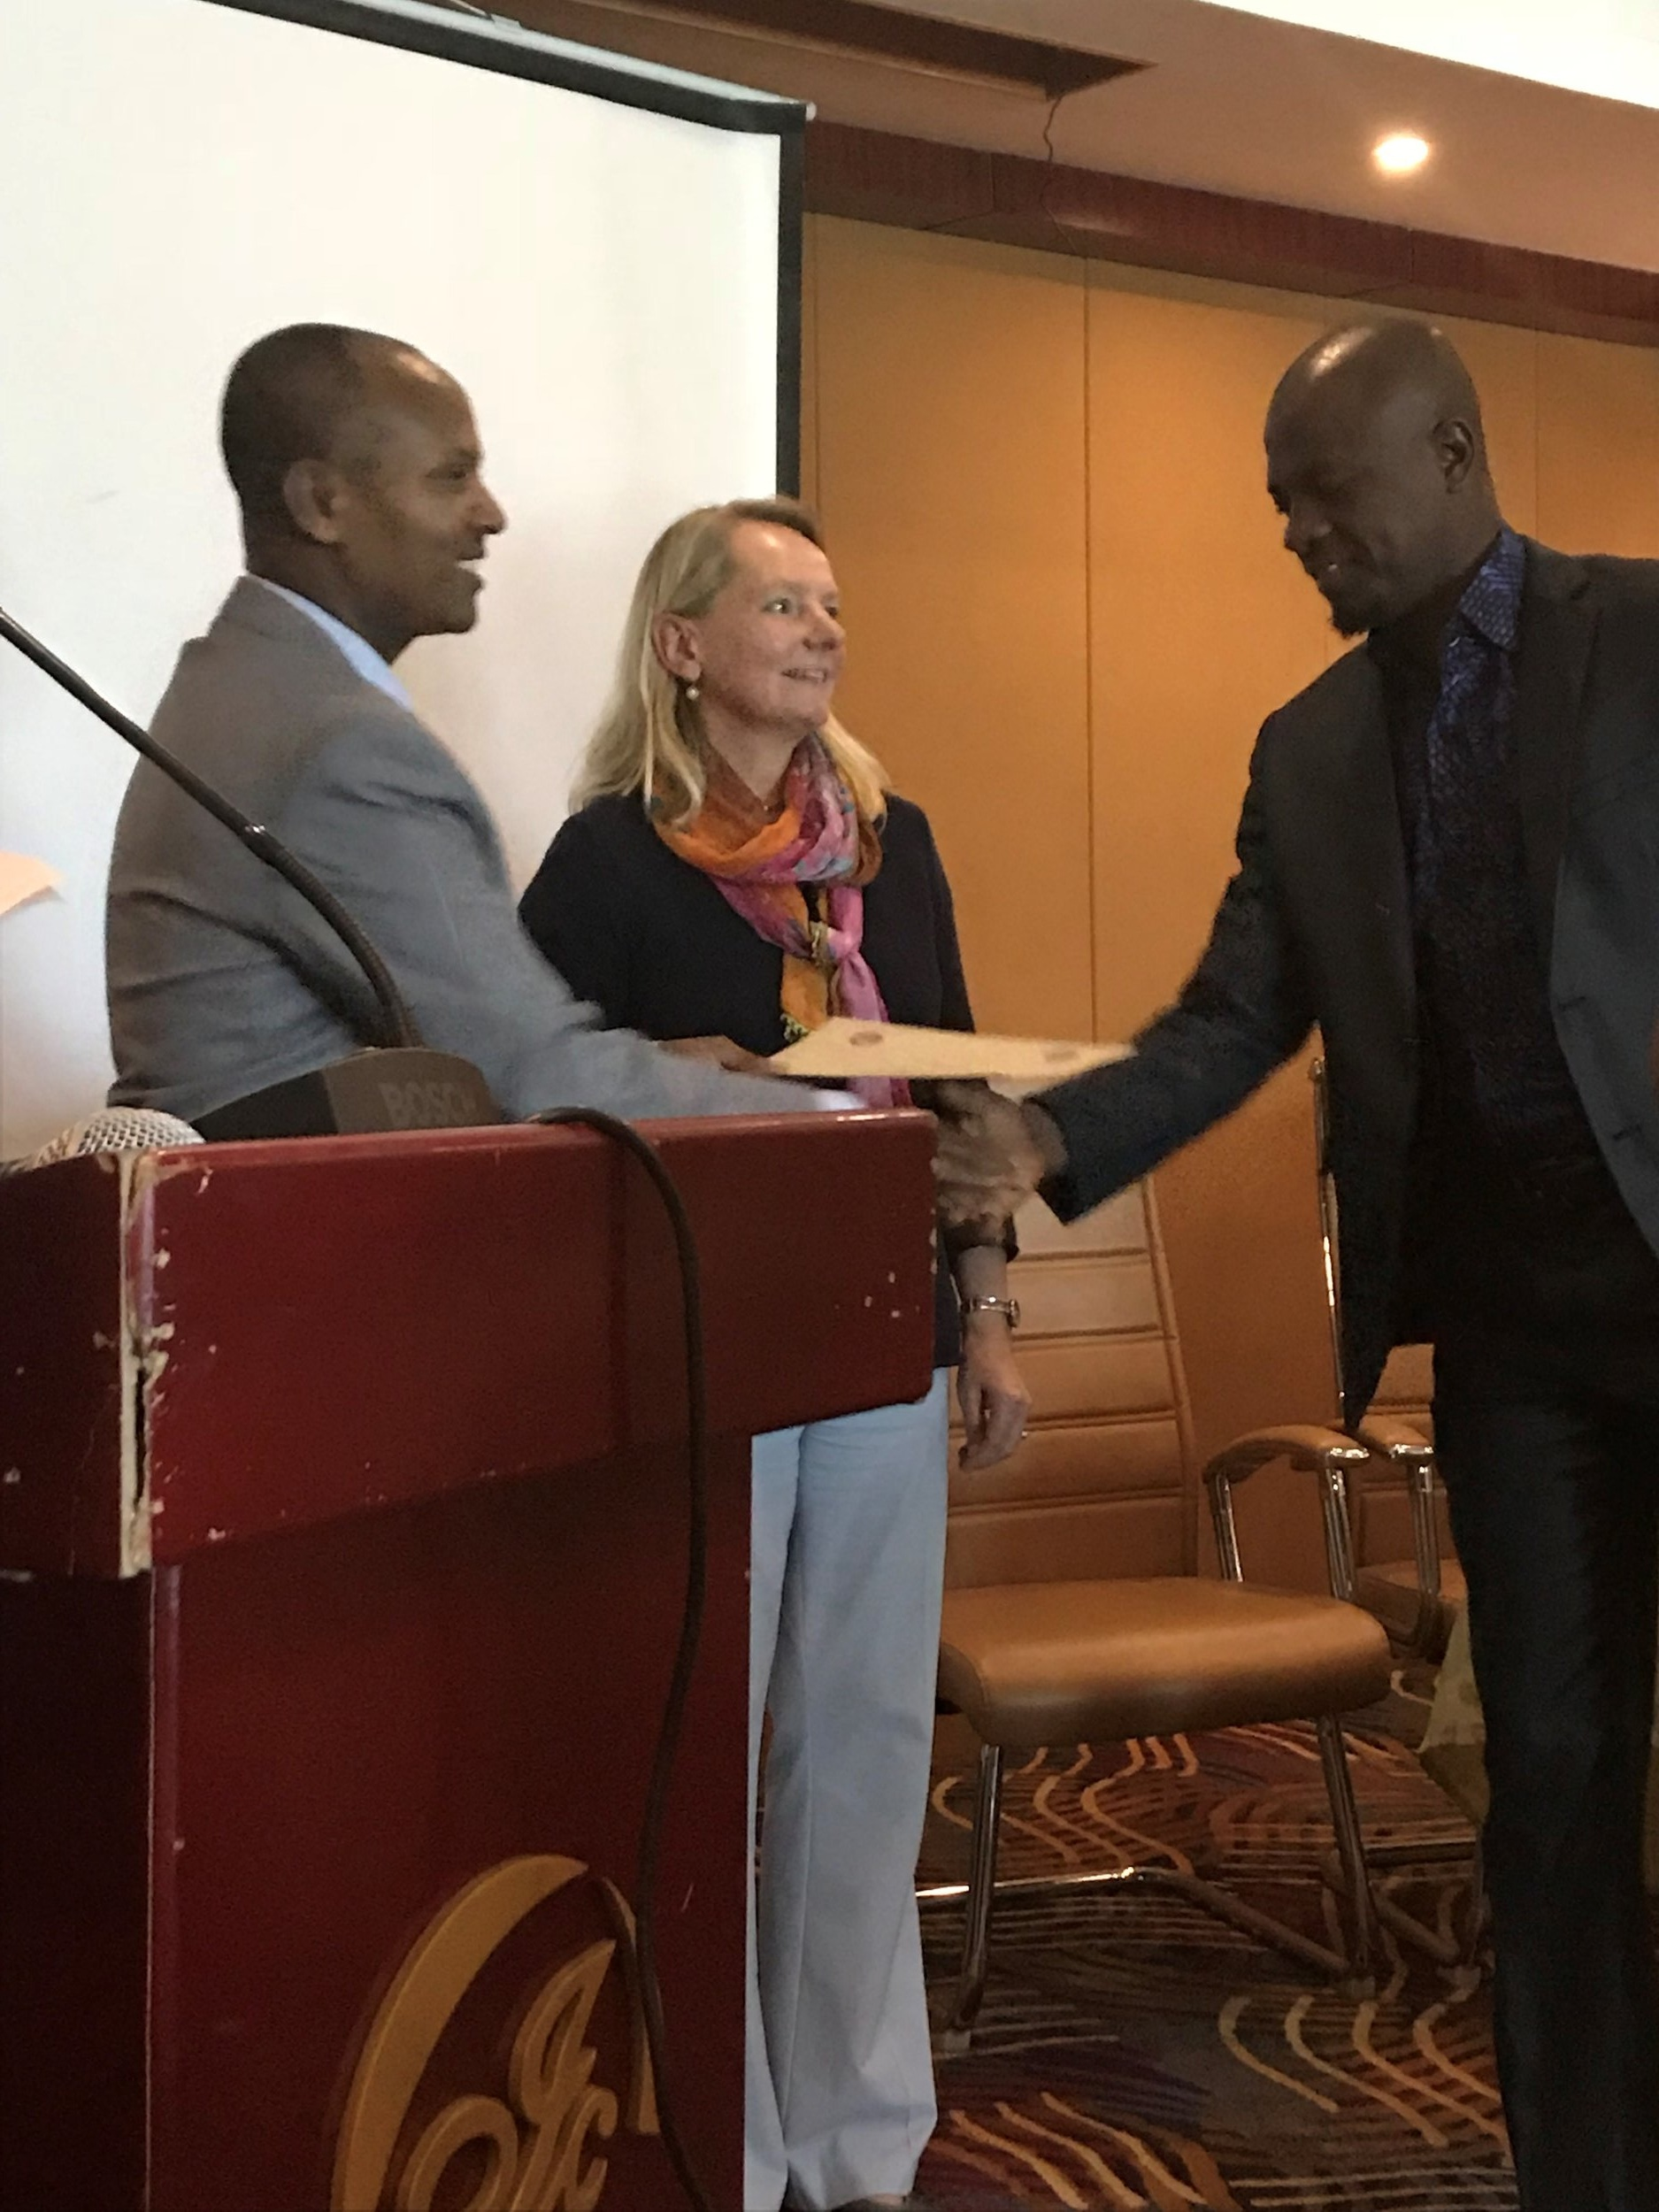 CIERP Associate Director Mieke van der Wansem with Ethiopia's Minister Gemedo Dalle and a training attendee.